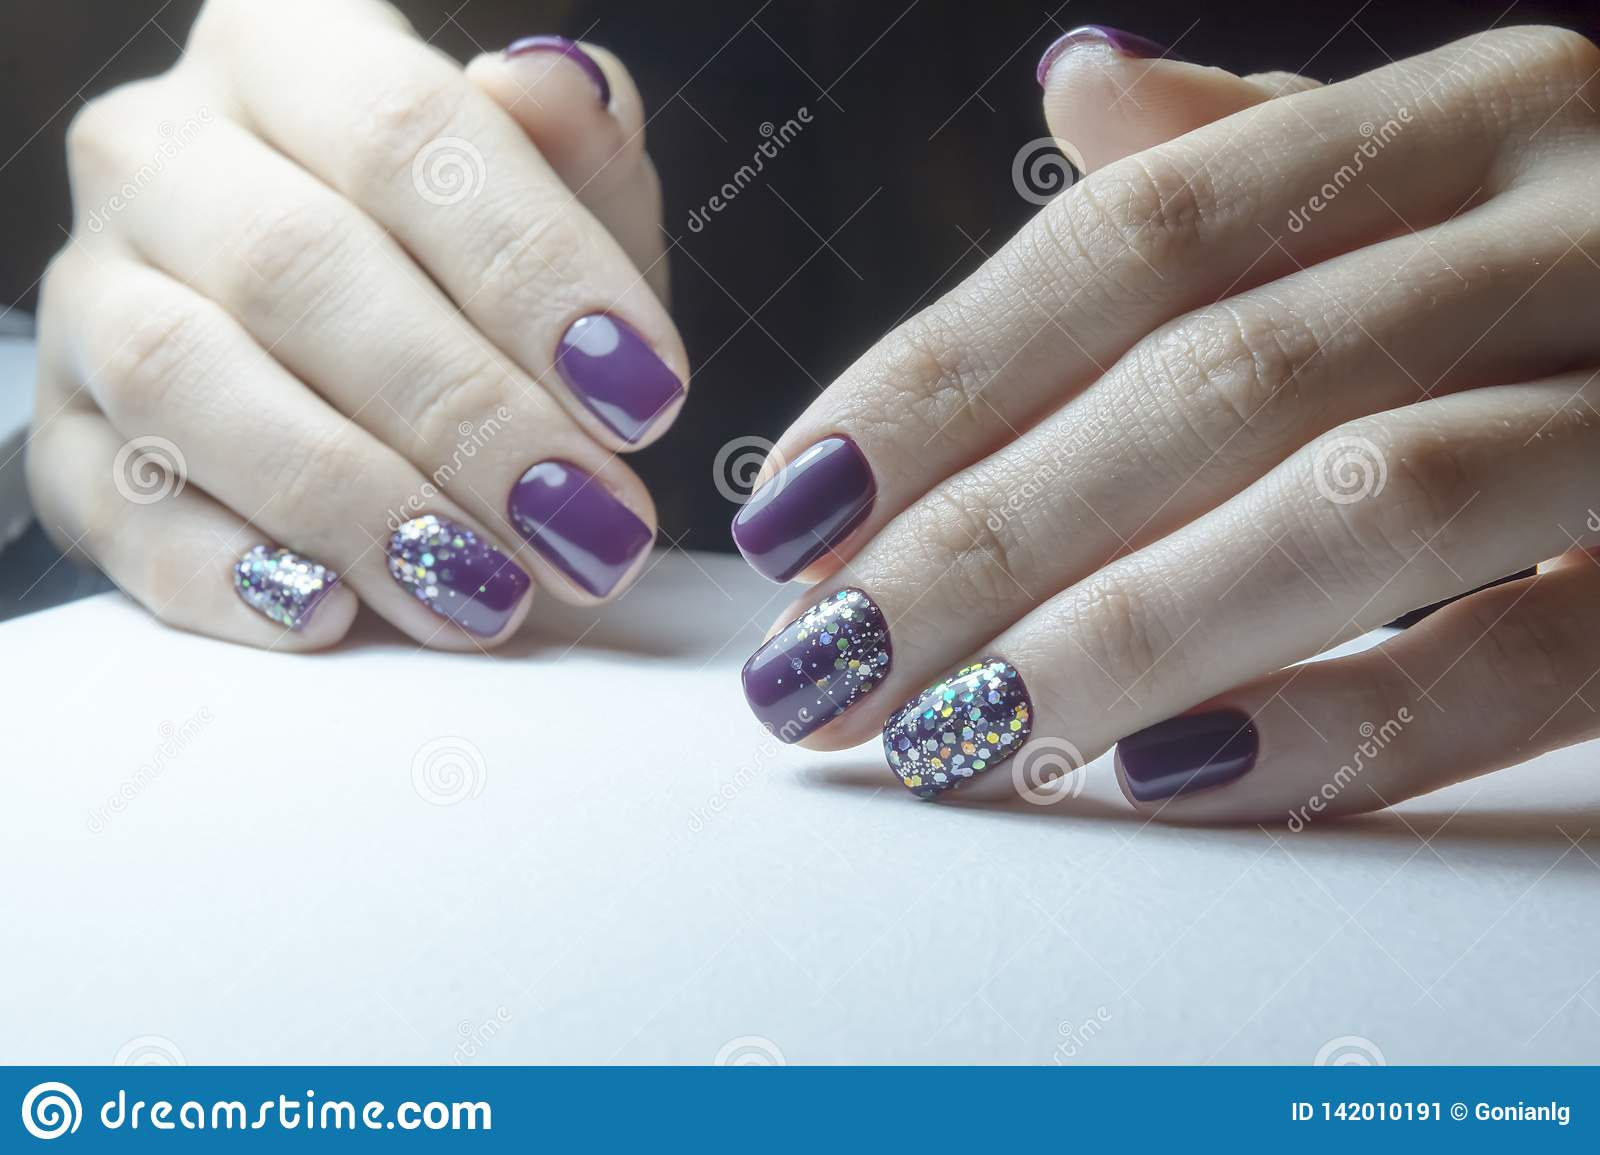 Apparatus manicure, preparing nails for gel polish, the process of coating